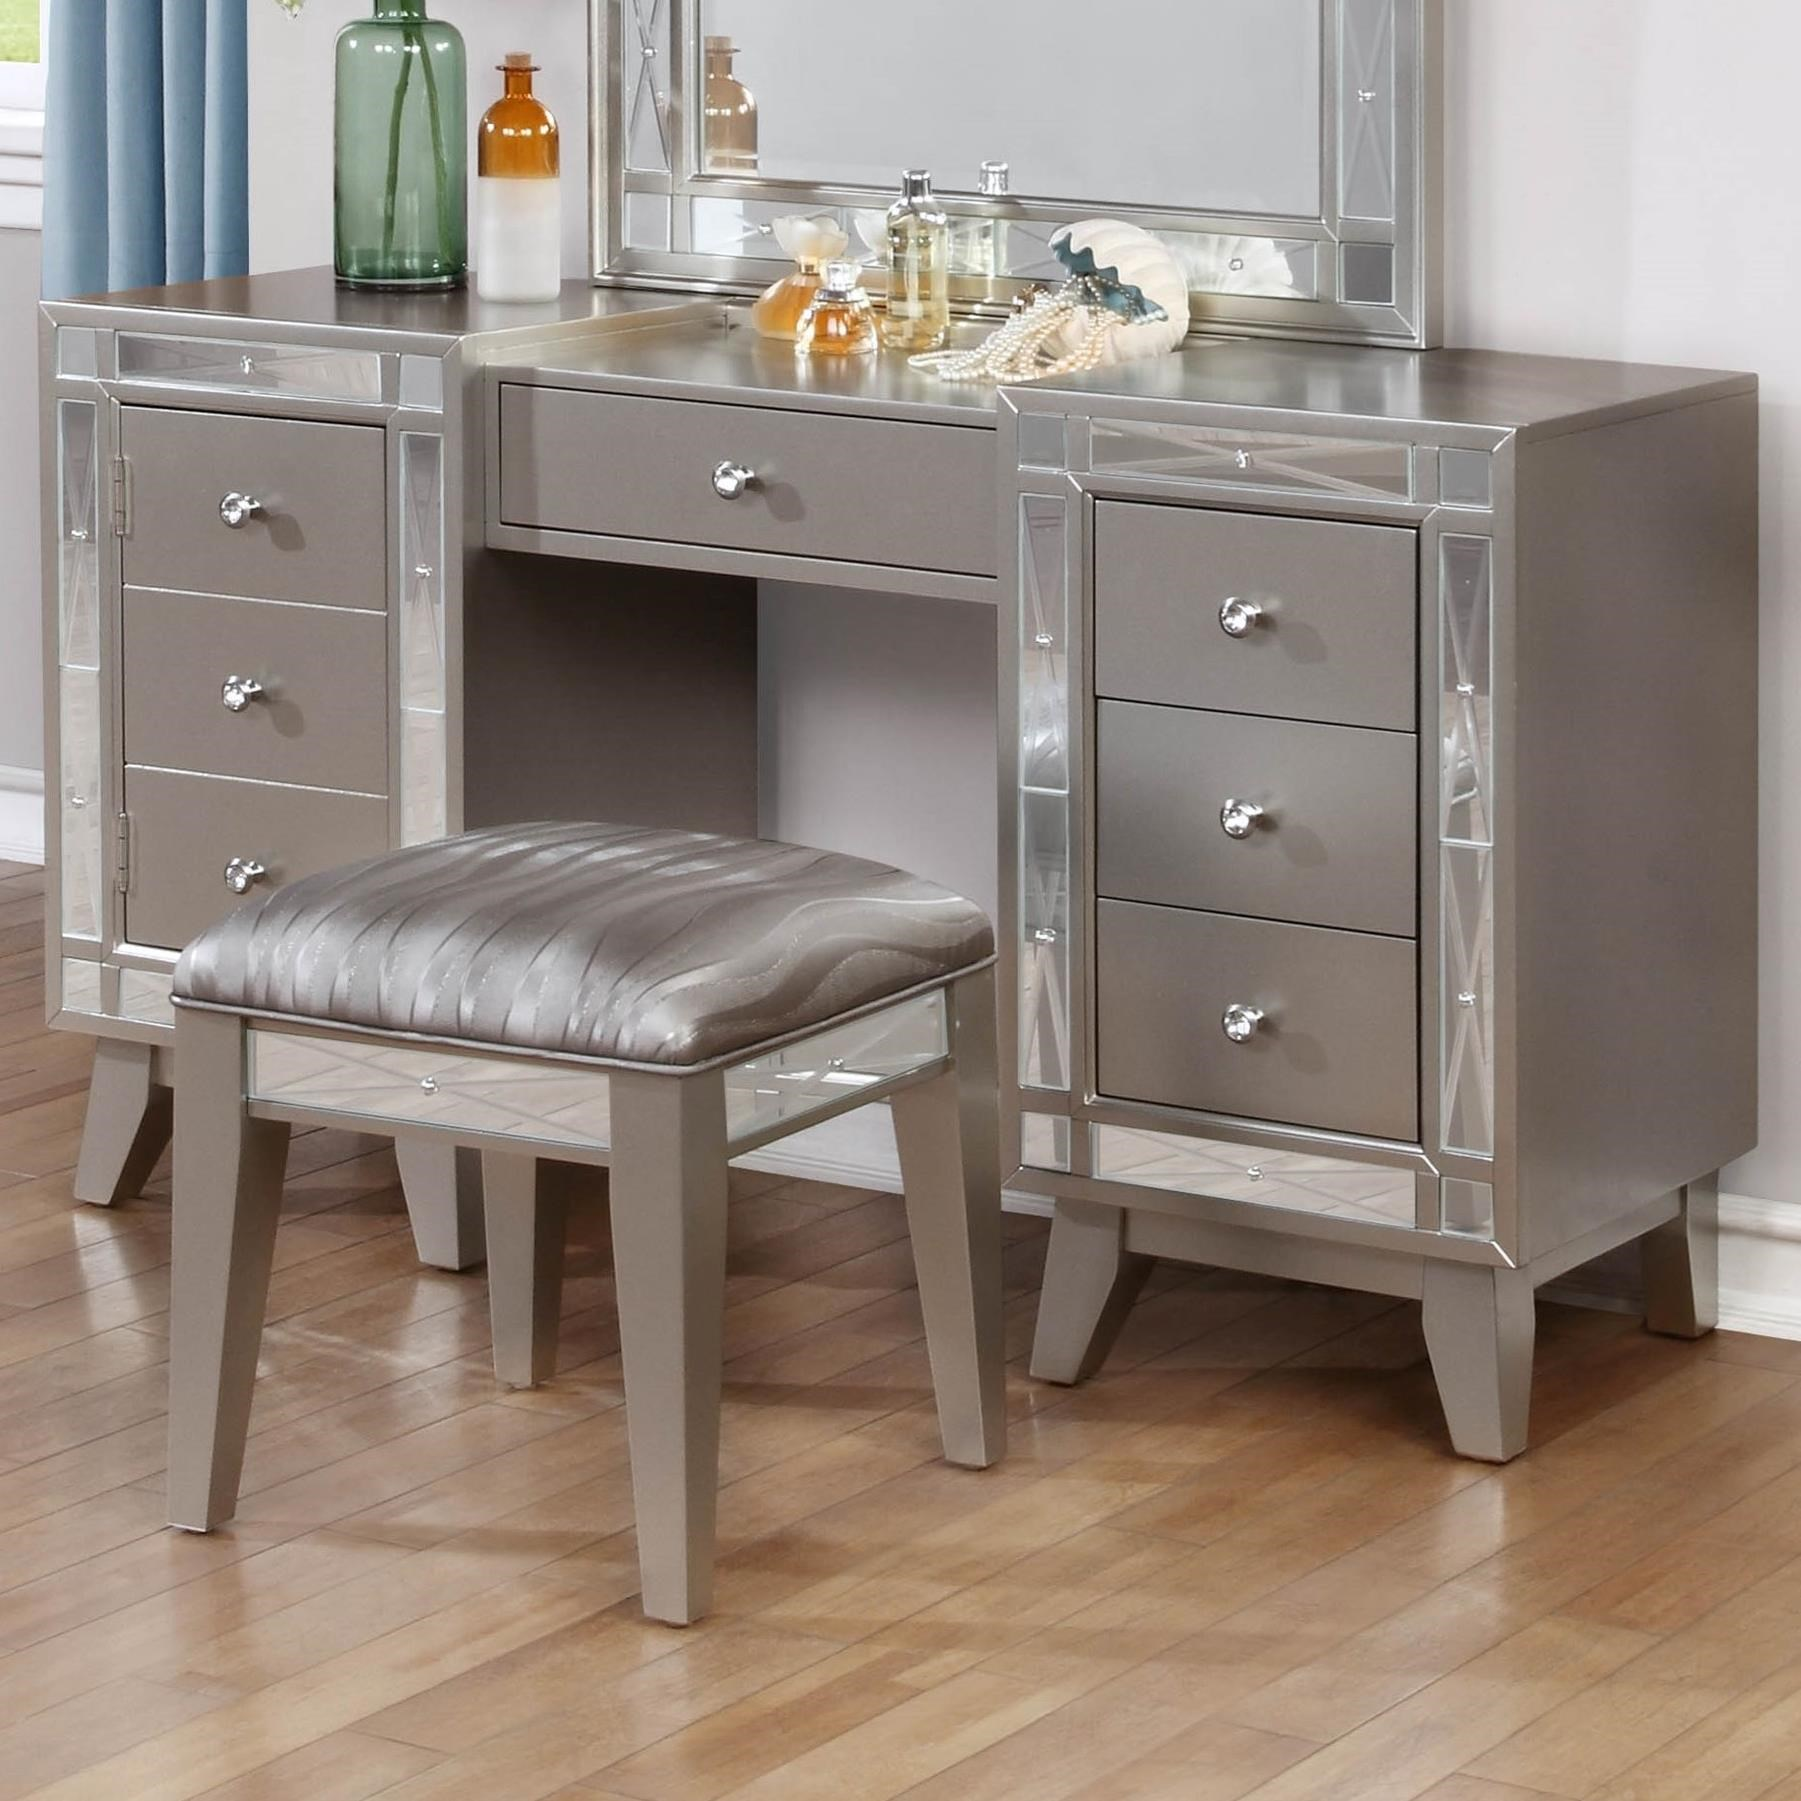 Leighton Vanity Desk & Stool by Coaster at Northeast Factory Direct